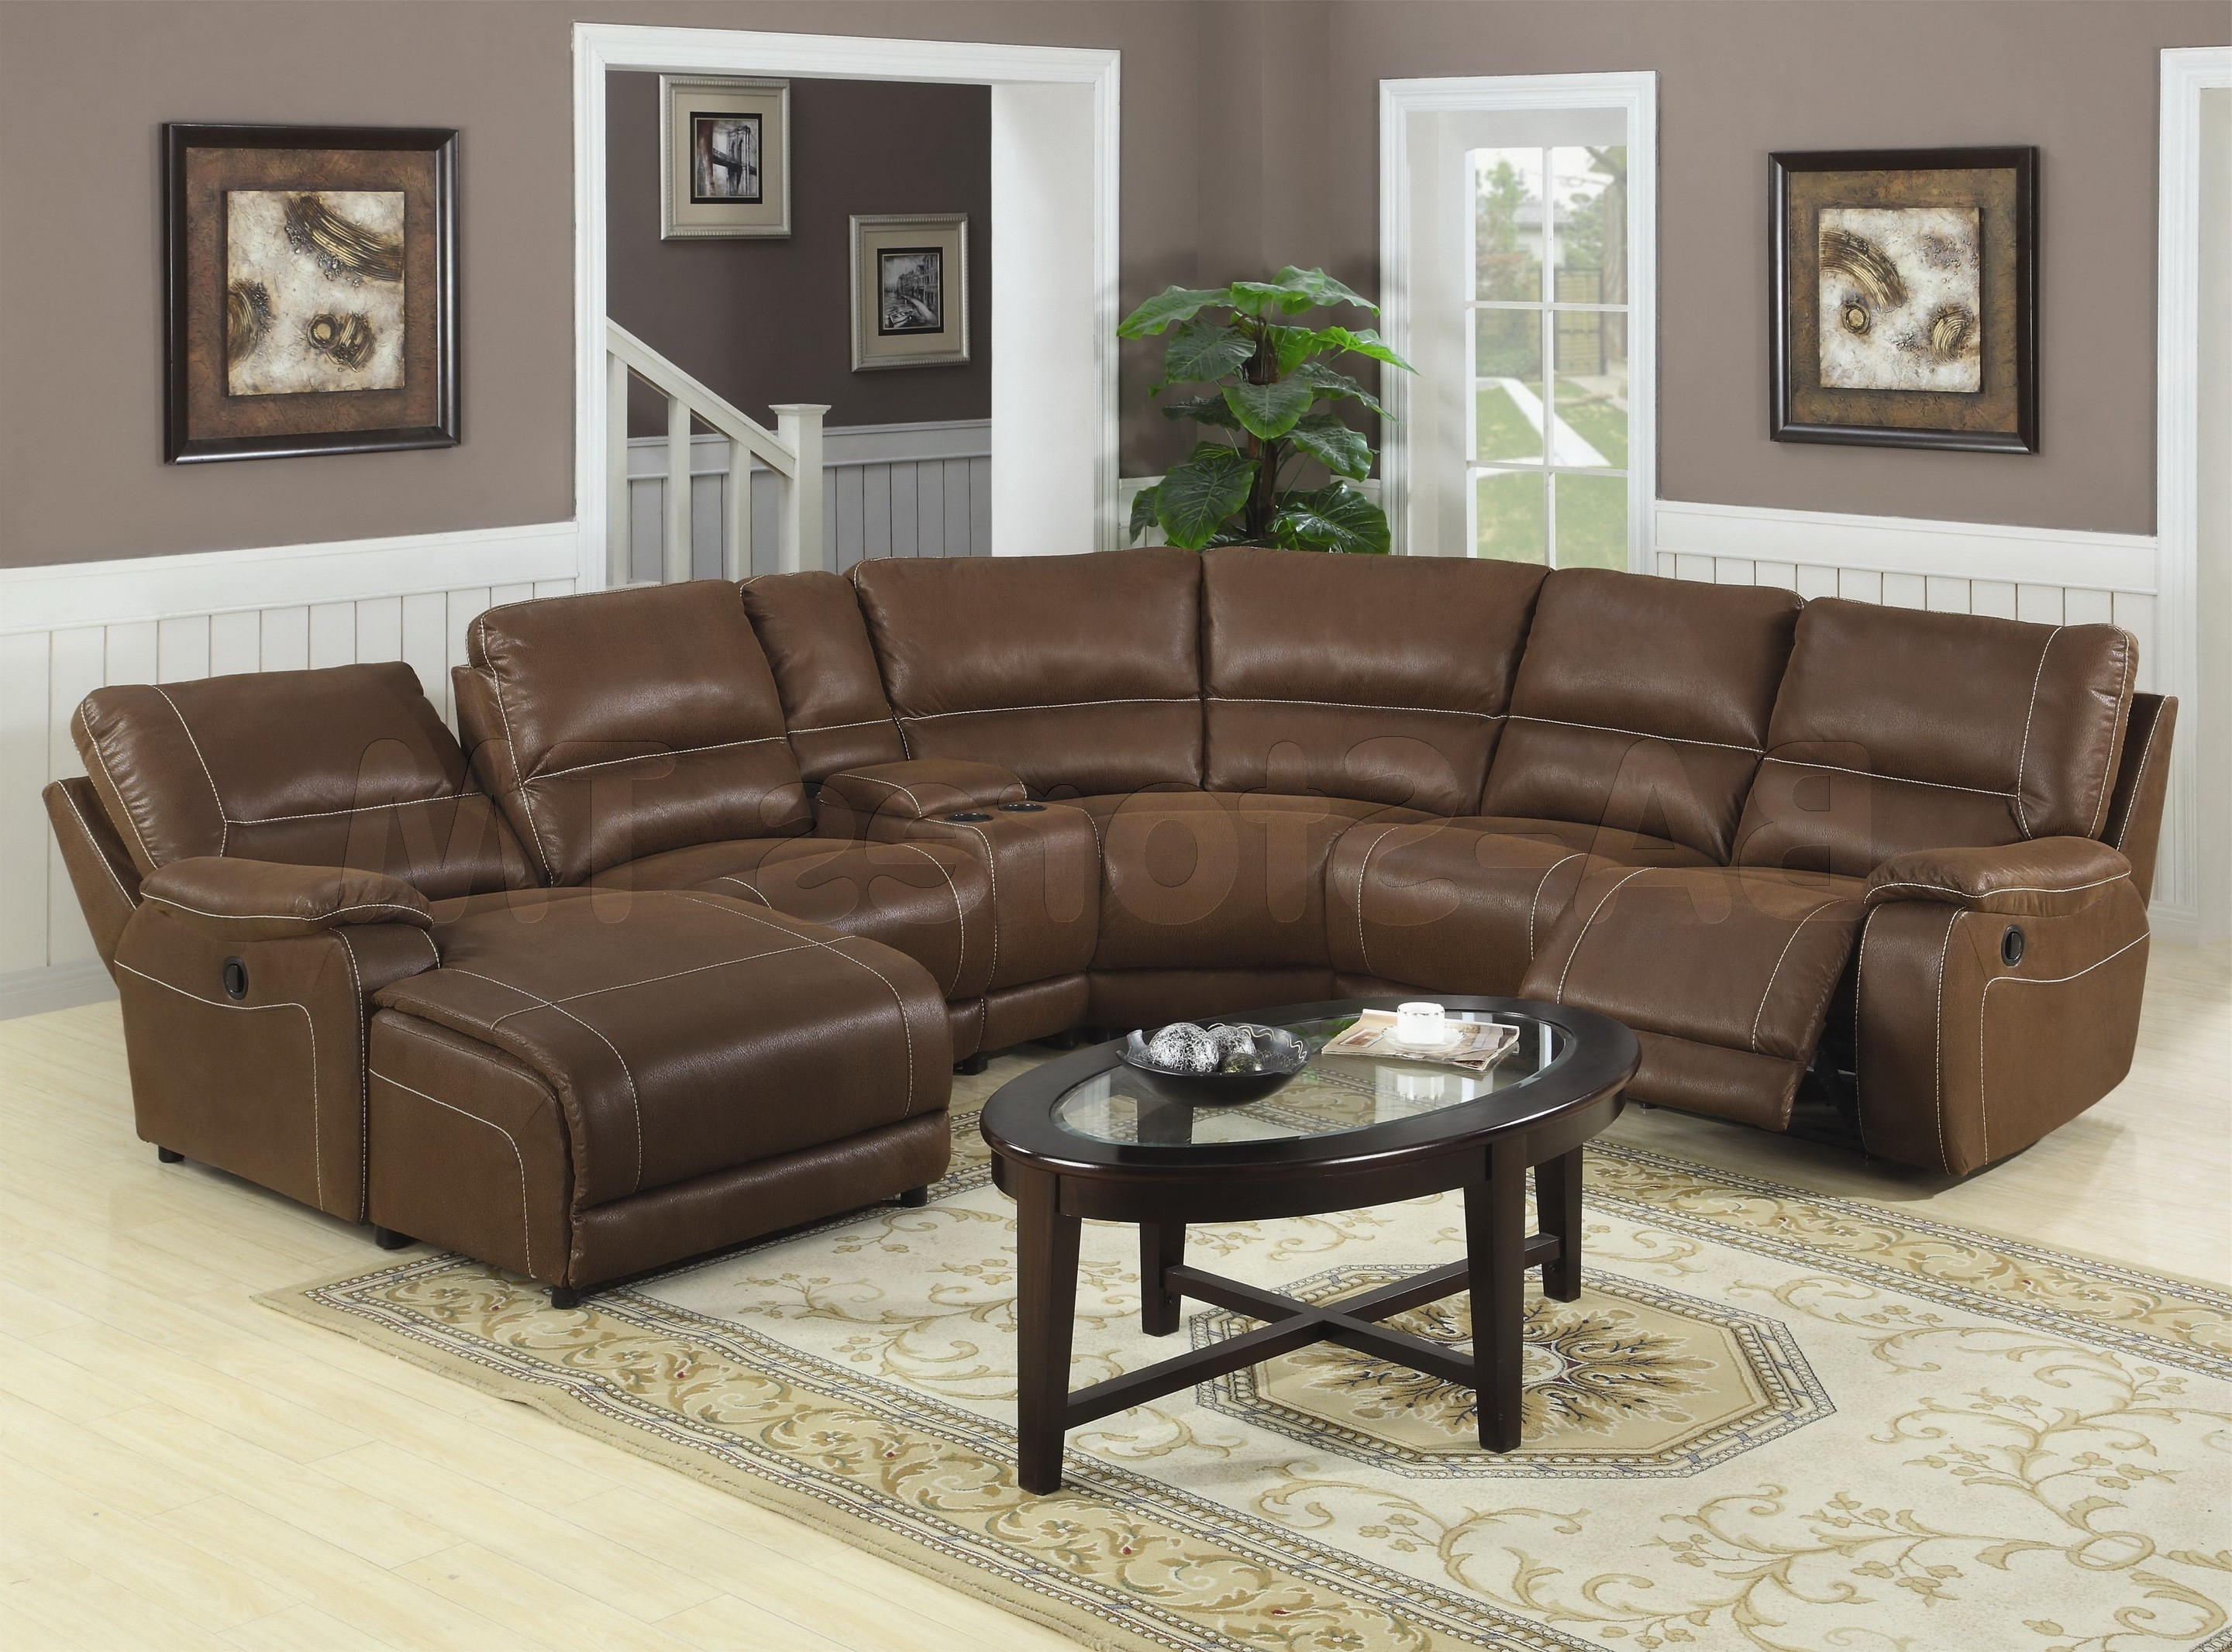 Recent Sectional Sofas Decorating In Living Room : Living Room Furniture Sectional Modern Sofa Brown (View 10 of 20)